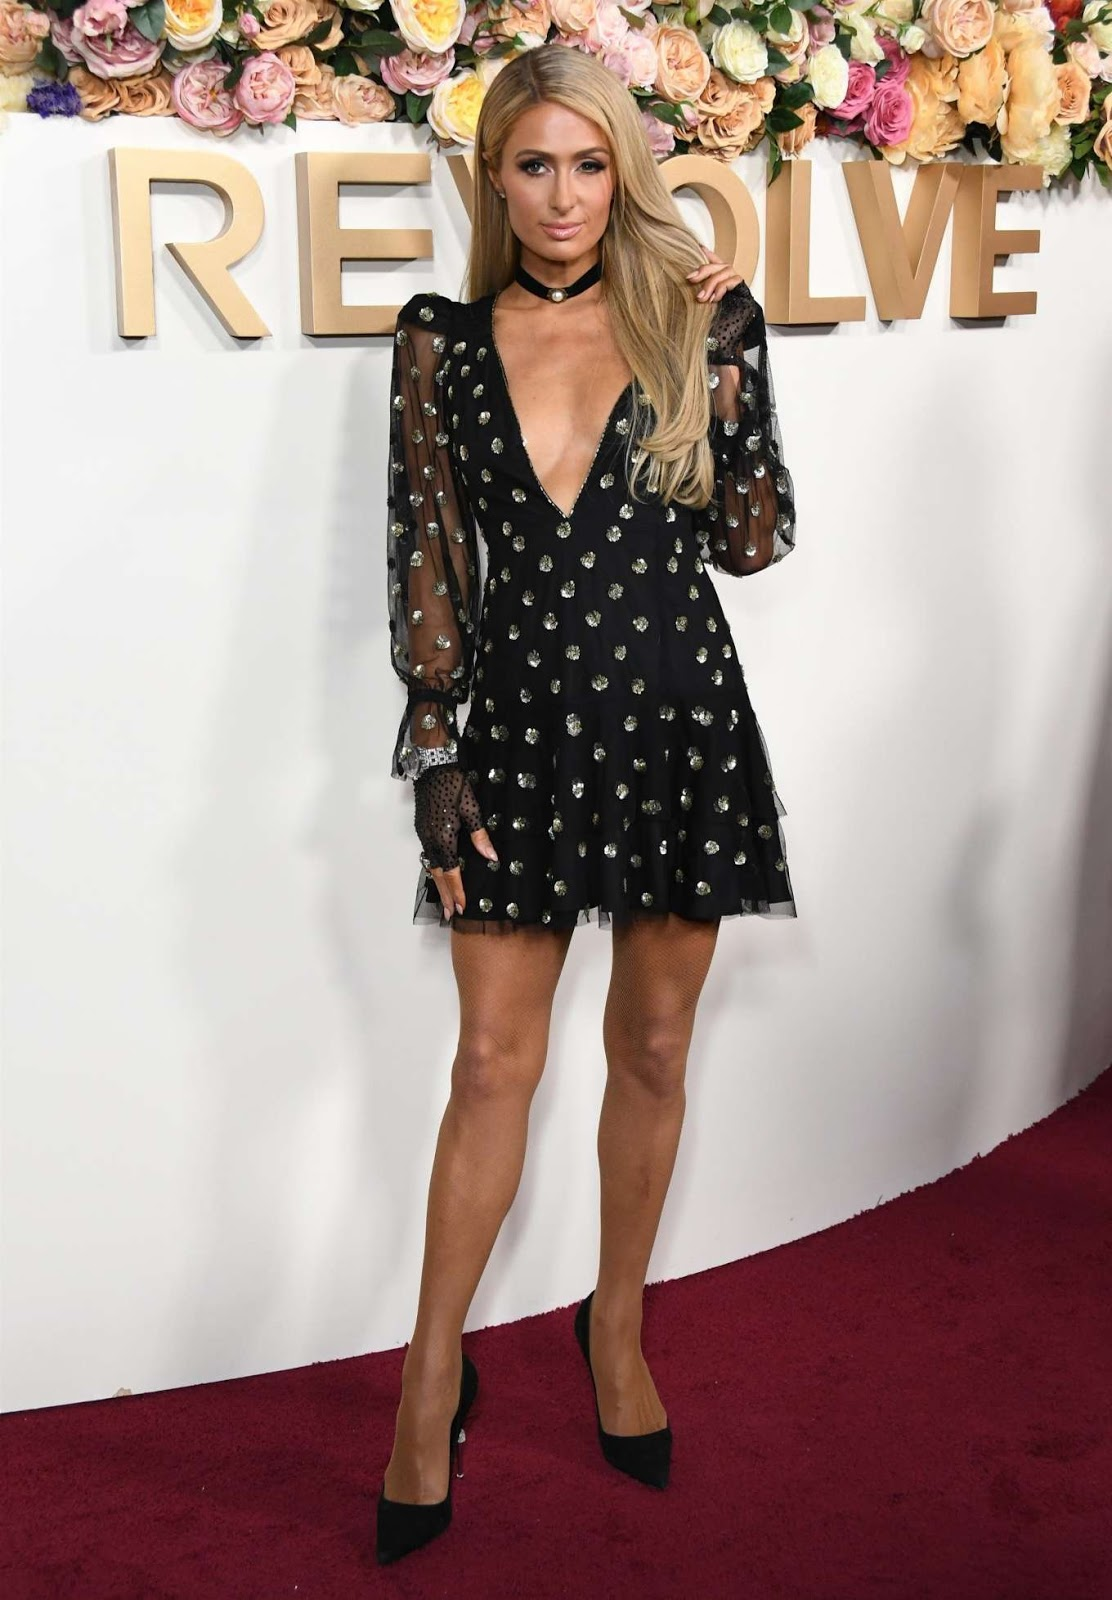 Paris Hilton – 2019 REVOLVE awards in West Hollywood